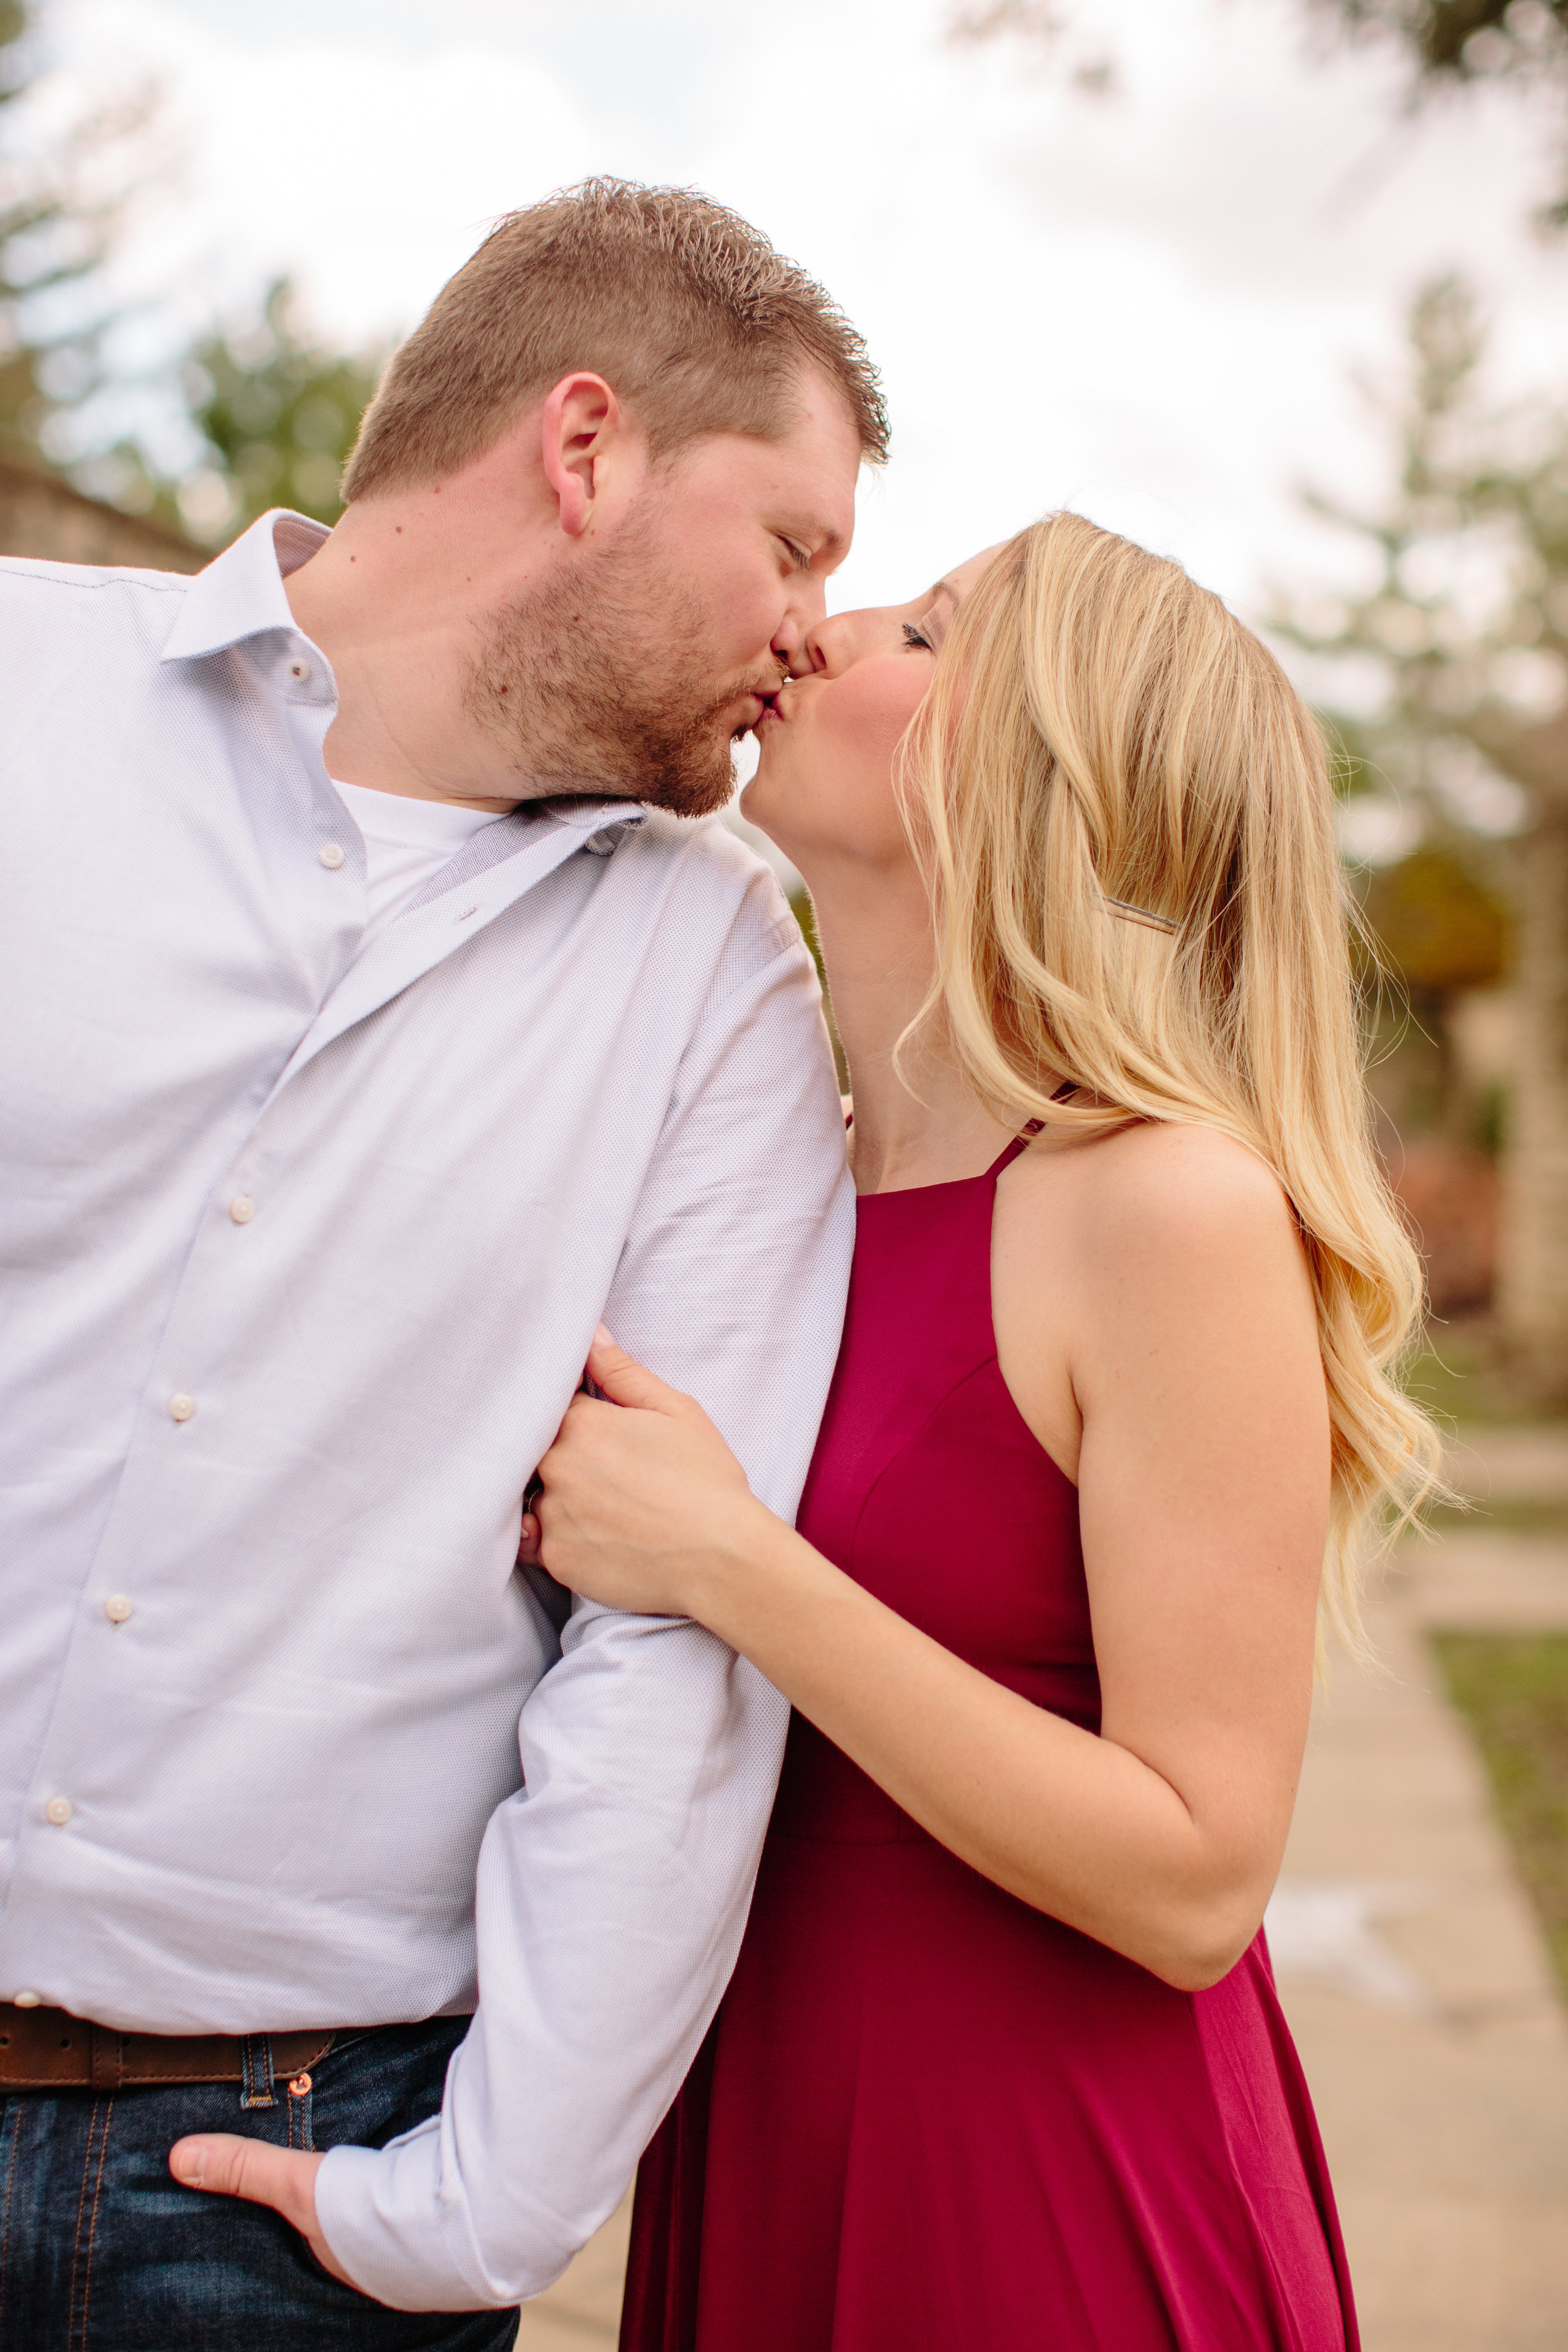 Midwest Engagement Photographer Amelia Renee based in Des Moines iowa